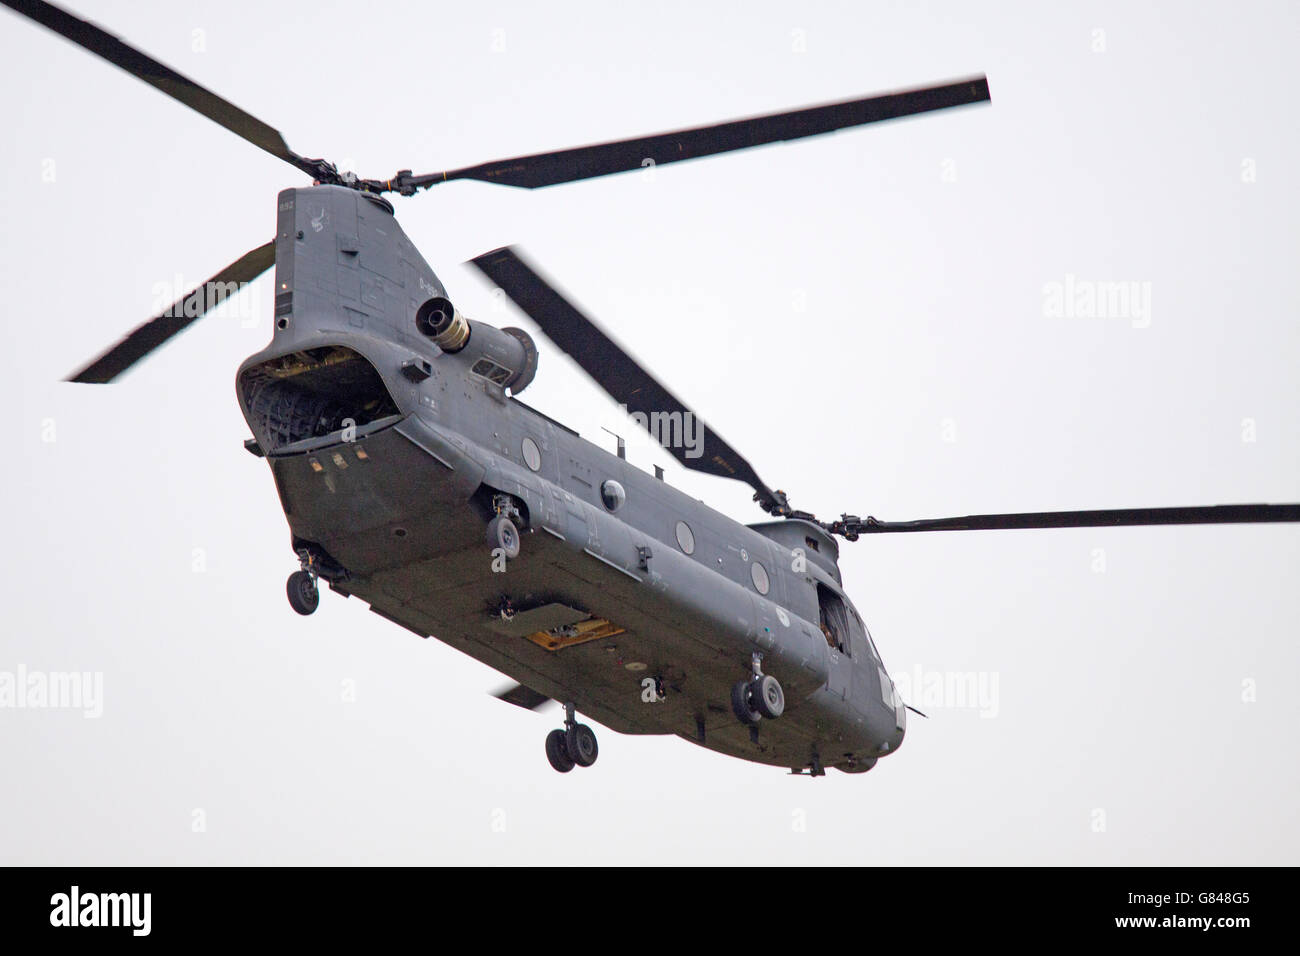 LEEUWARDEN, NETHERLANDS - JUNI 11 2016: Chinook CH-47 military helicopter in action during a demonstration flight - Stock Image